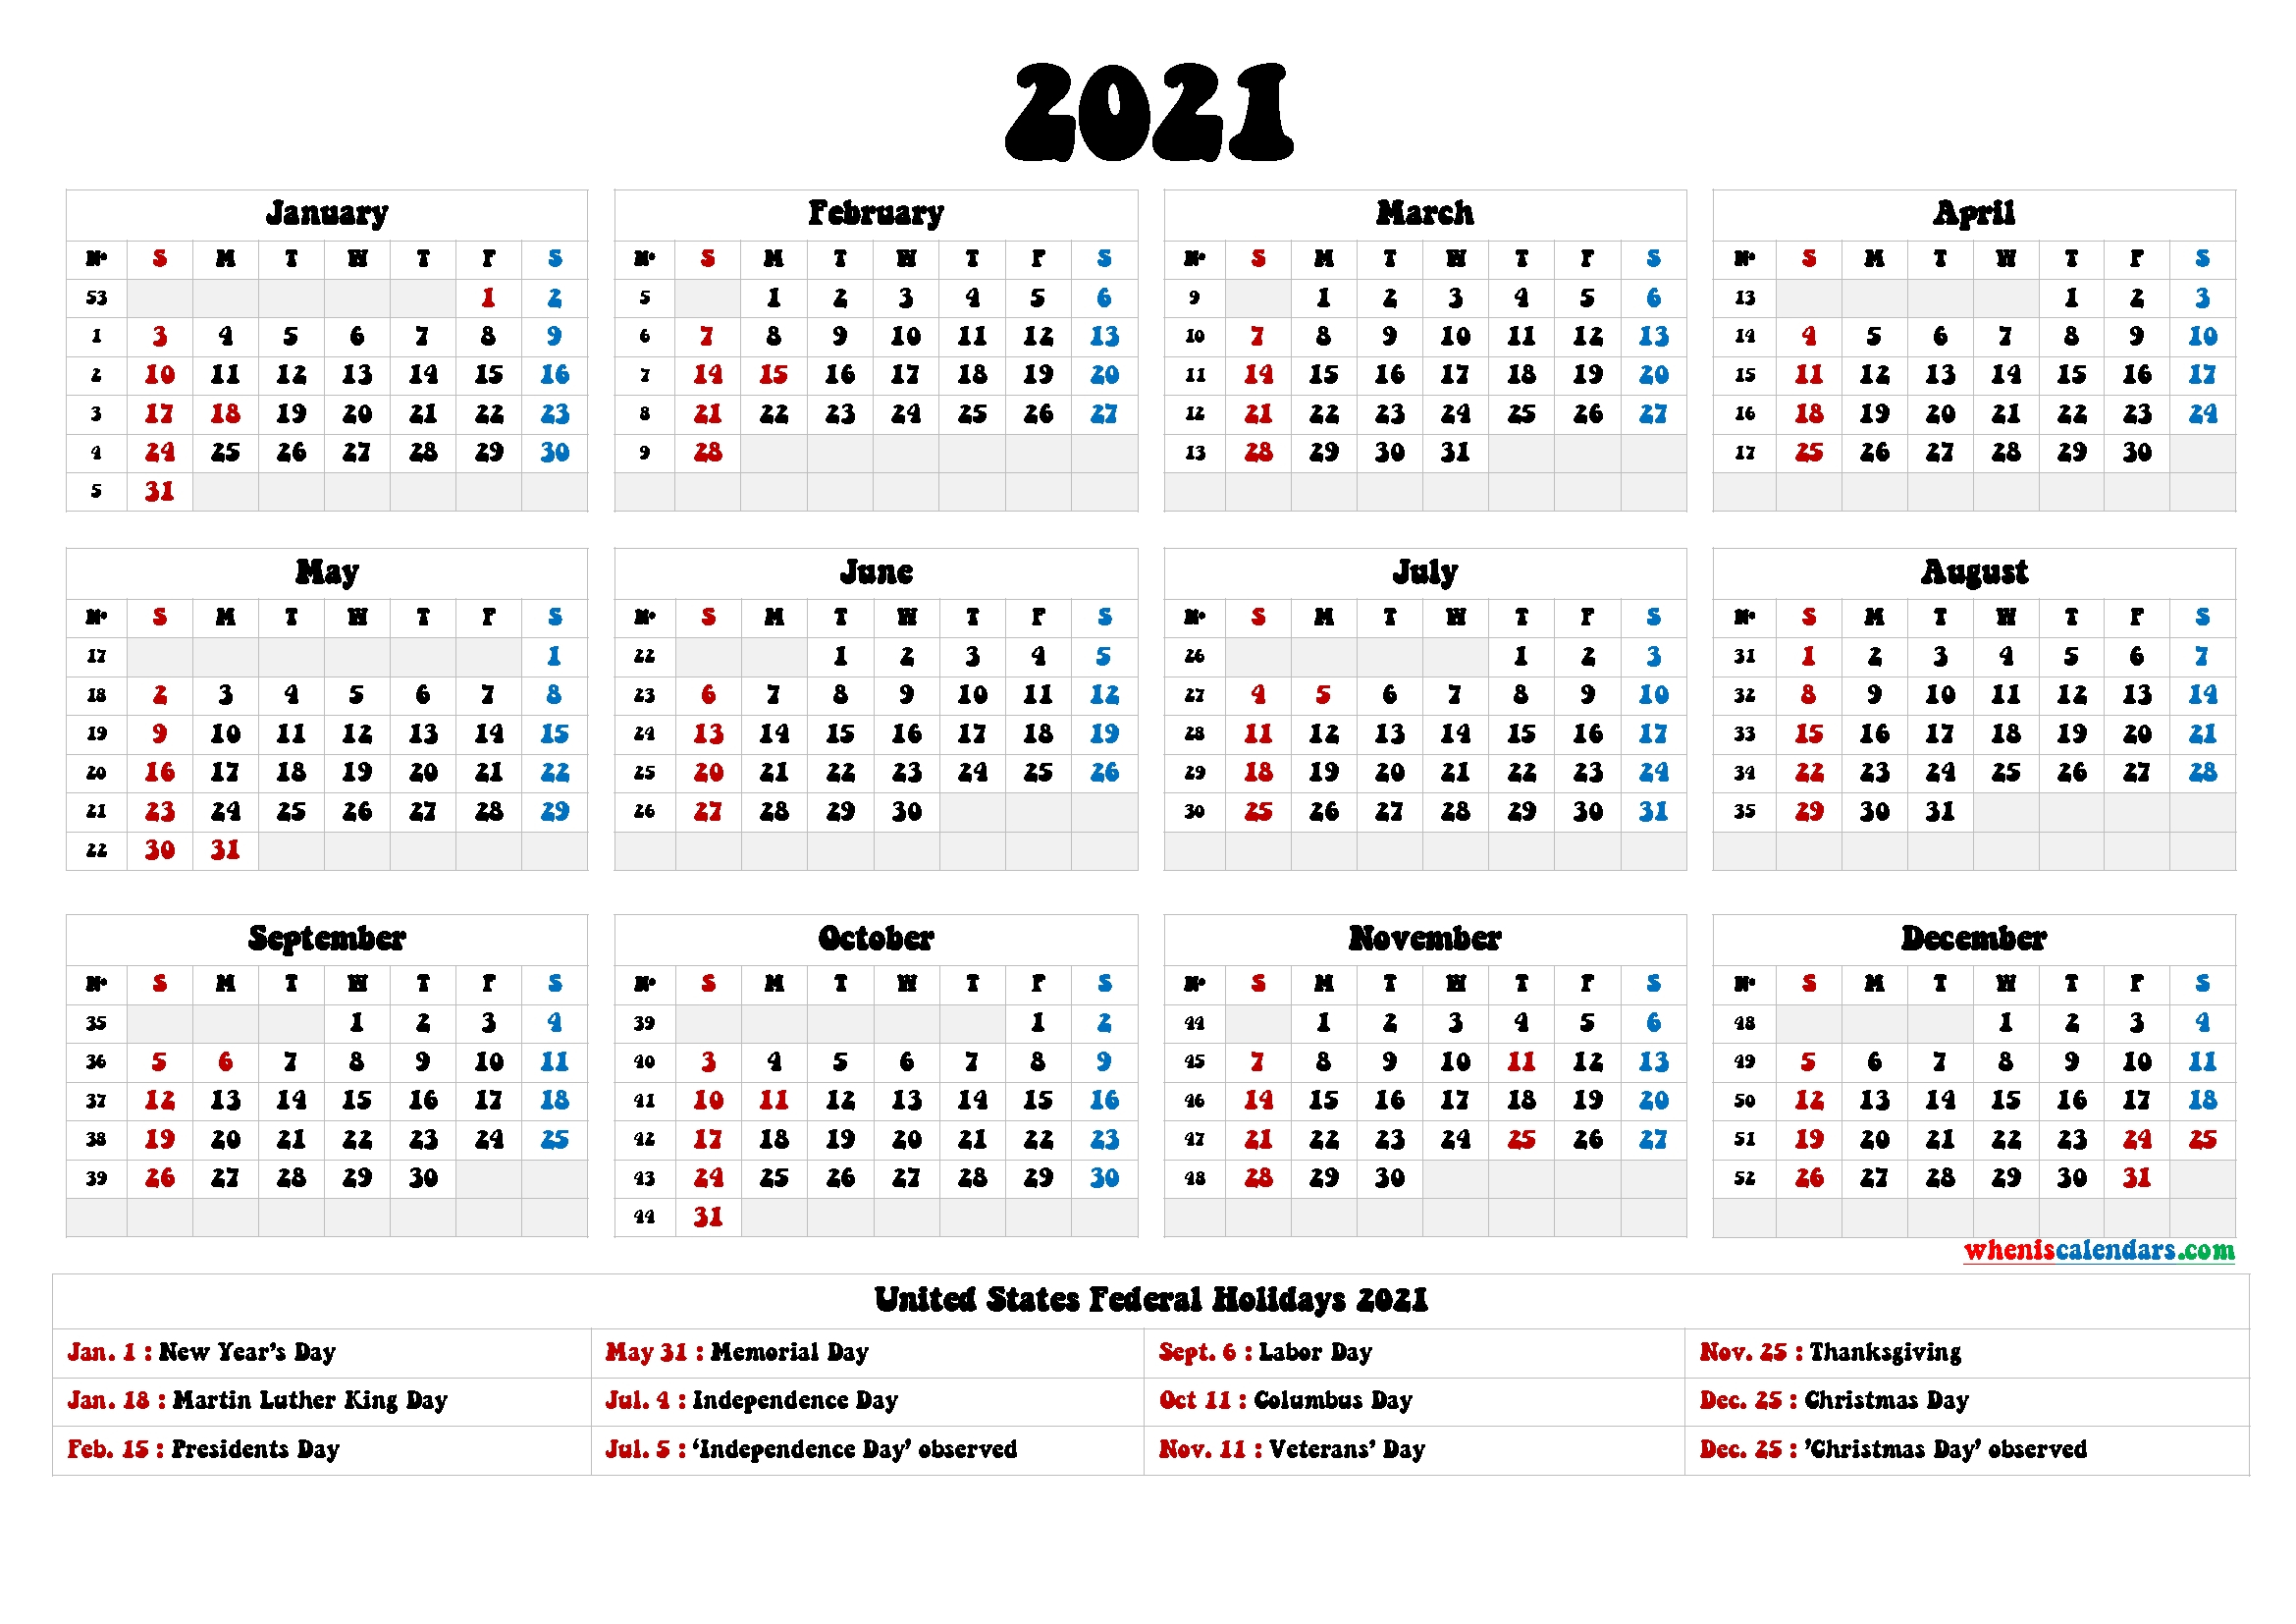 4Mmonth Calendar On One Page 2021 - Example Calendar Printable throughout Free Fillable Calendar 2021